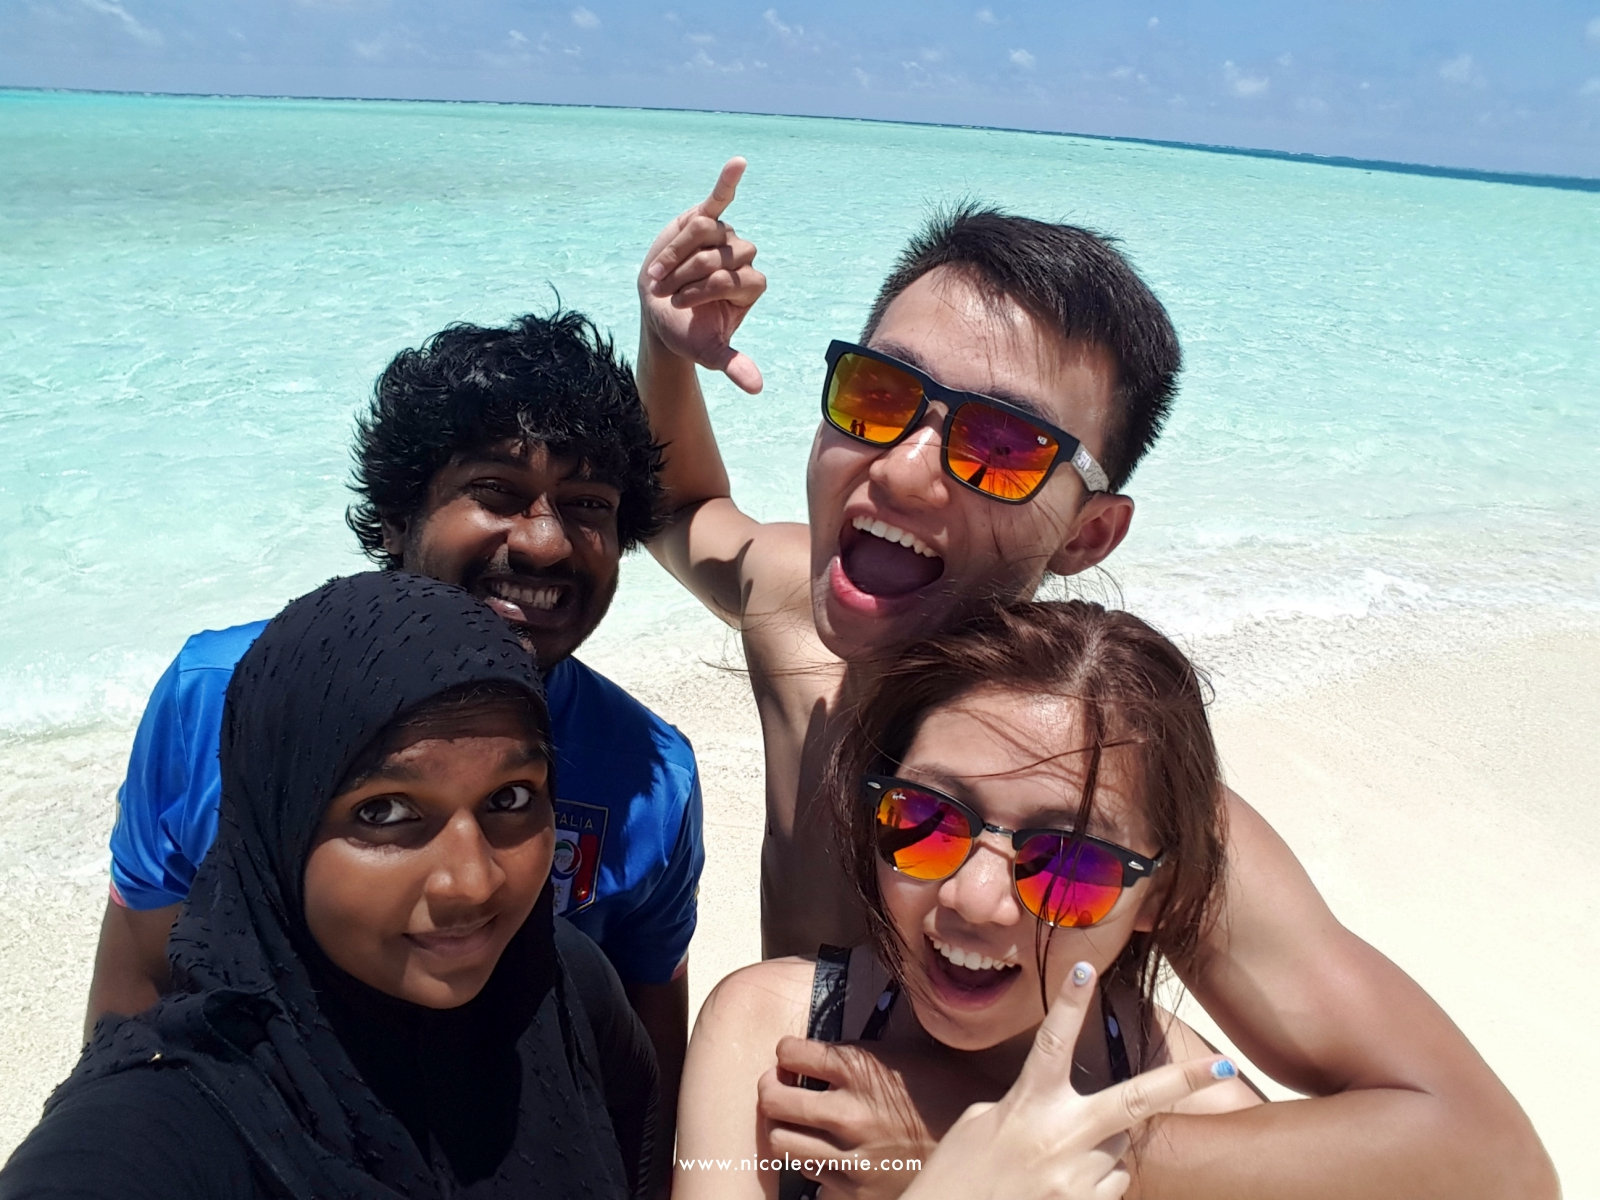 Nicole Cynnie | Sand Bank, Maldives 2